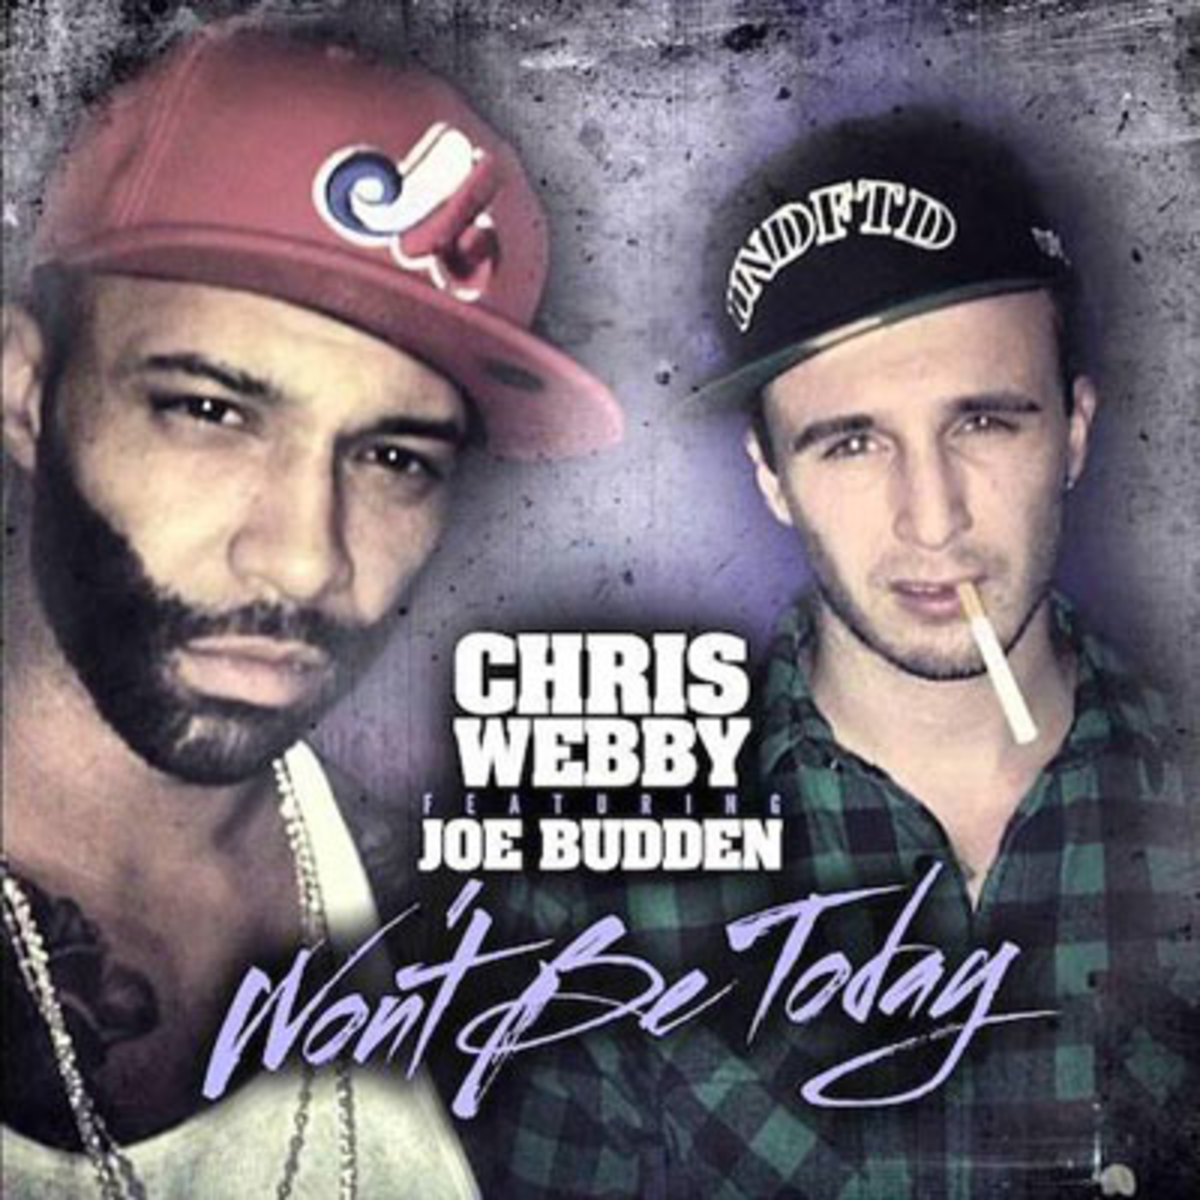 chriswebby-wontbetoday.jpg